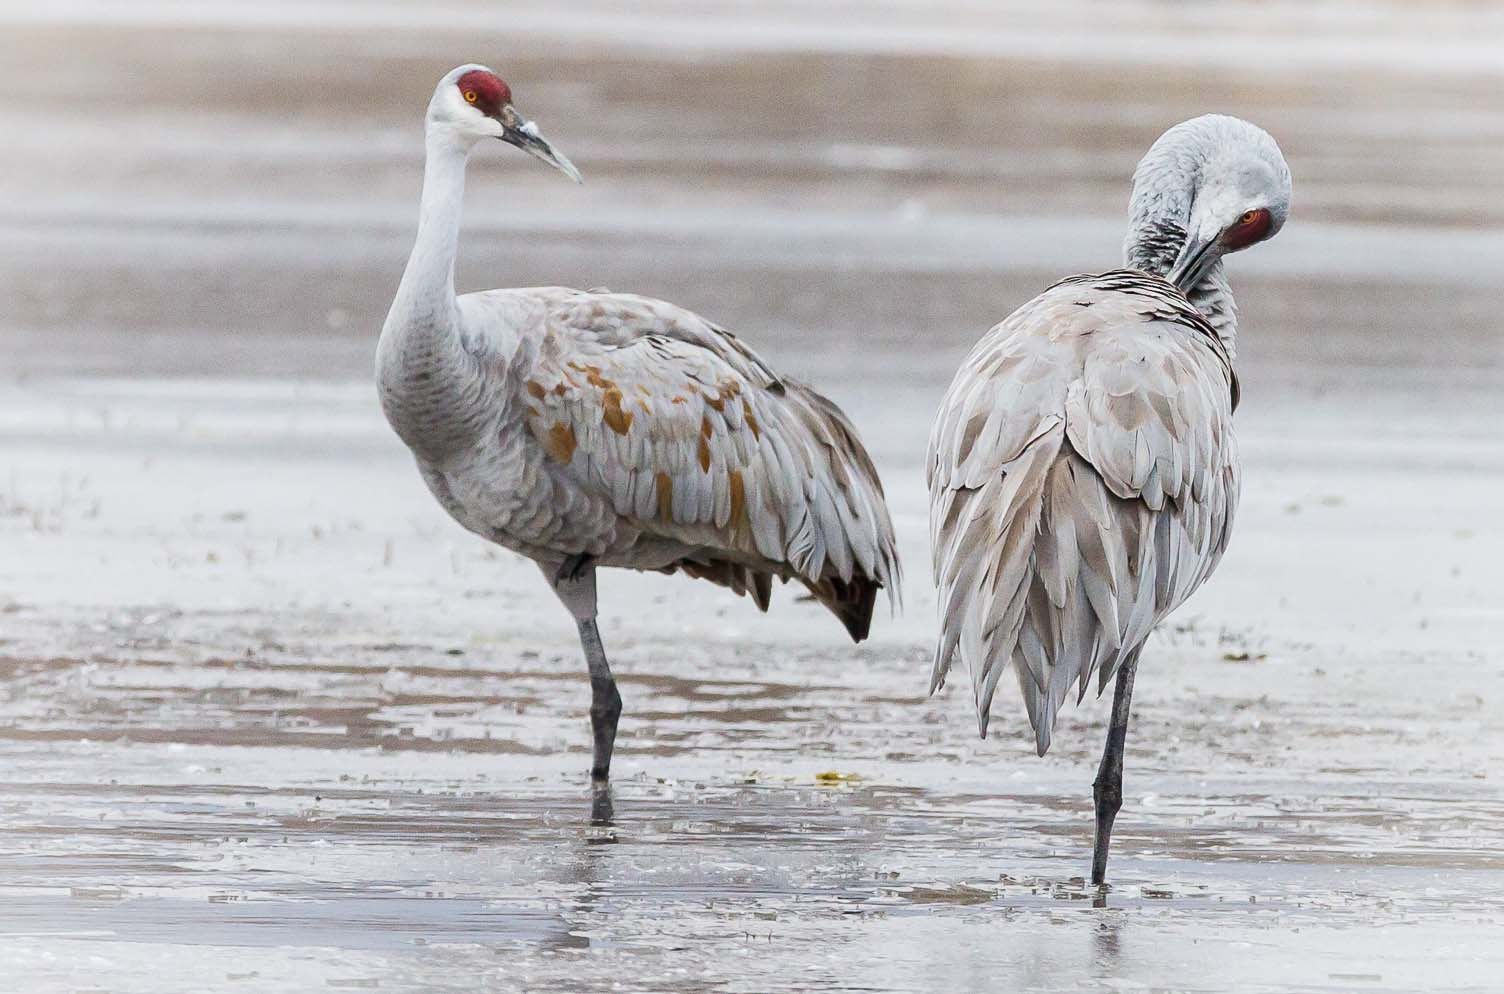 A leg to stand on, Bosque del Apache National Wildlife Refuge, San Antonio NM, January 5, 2013